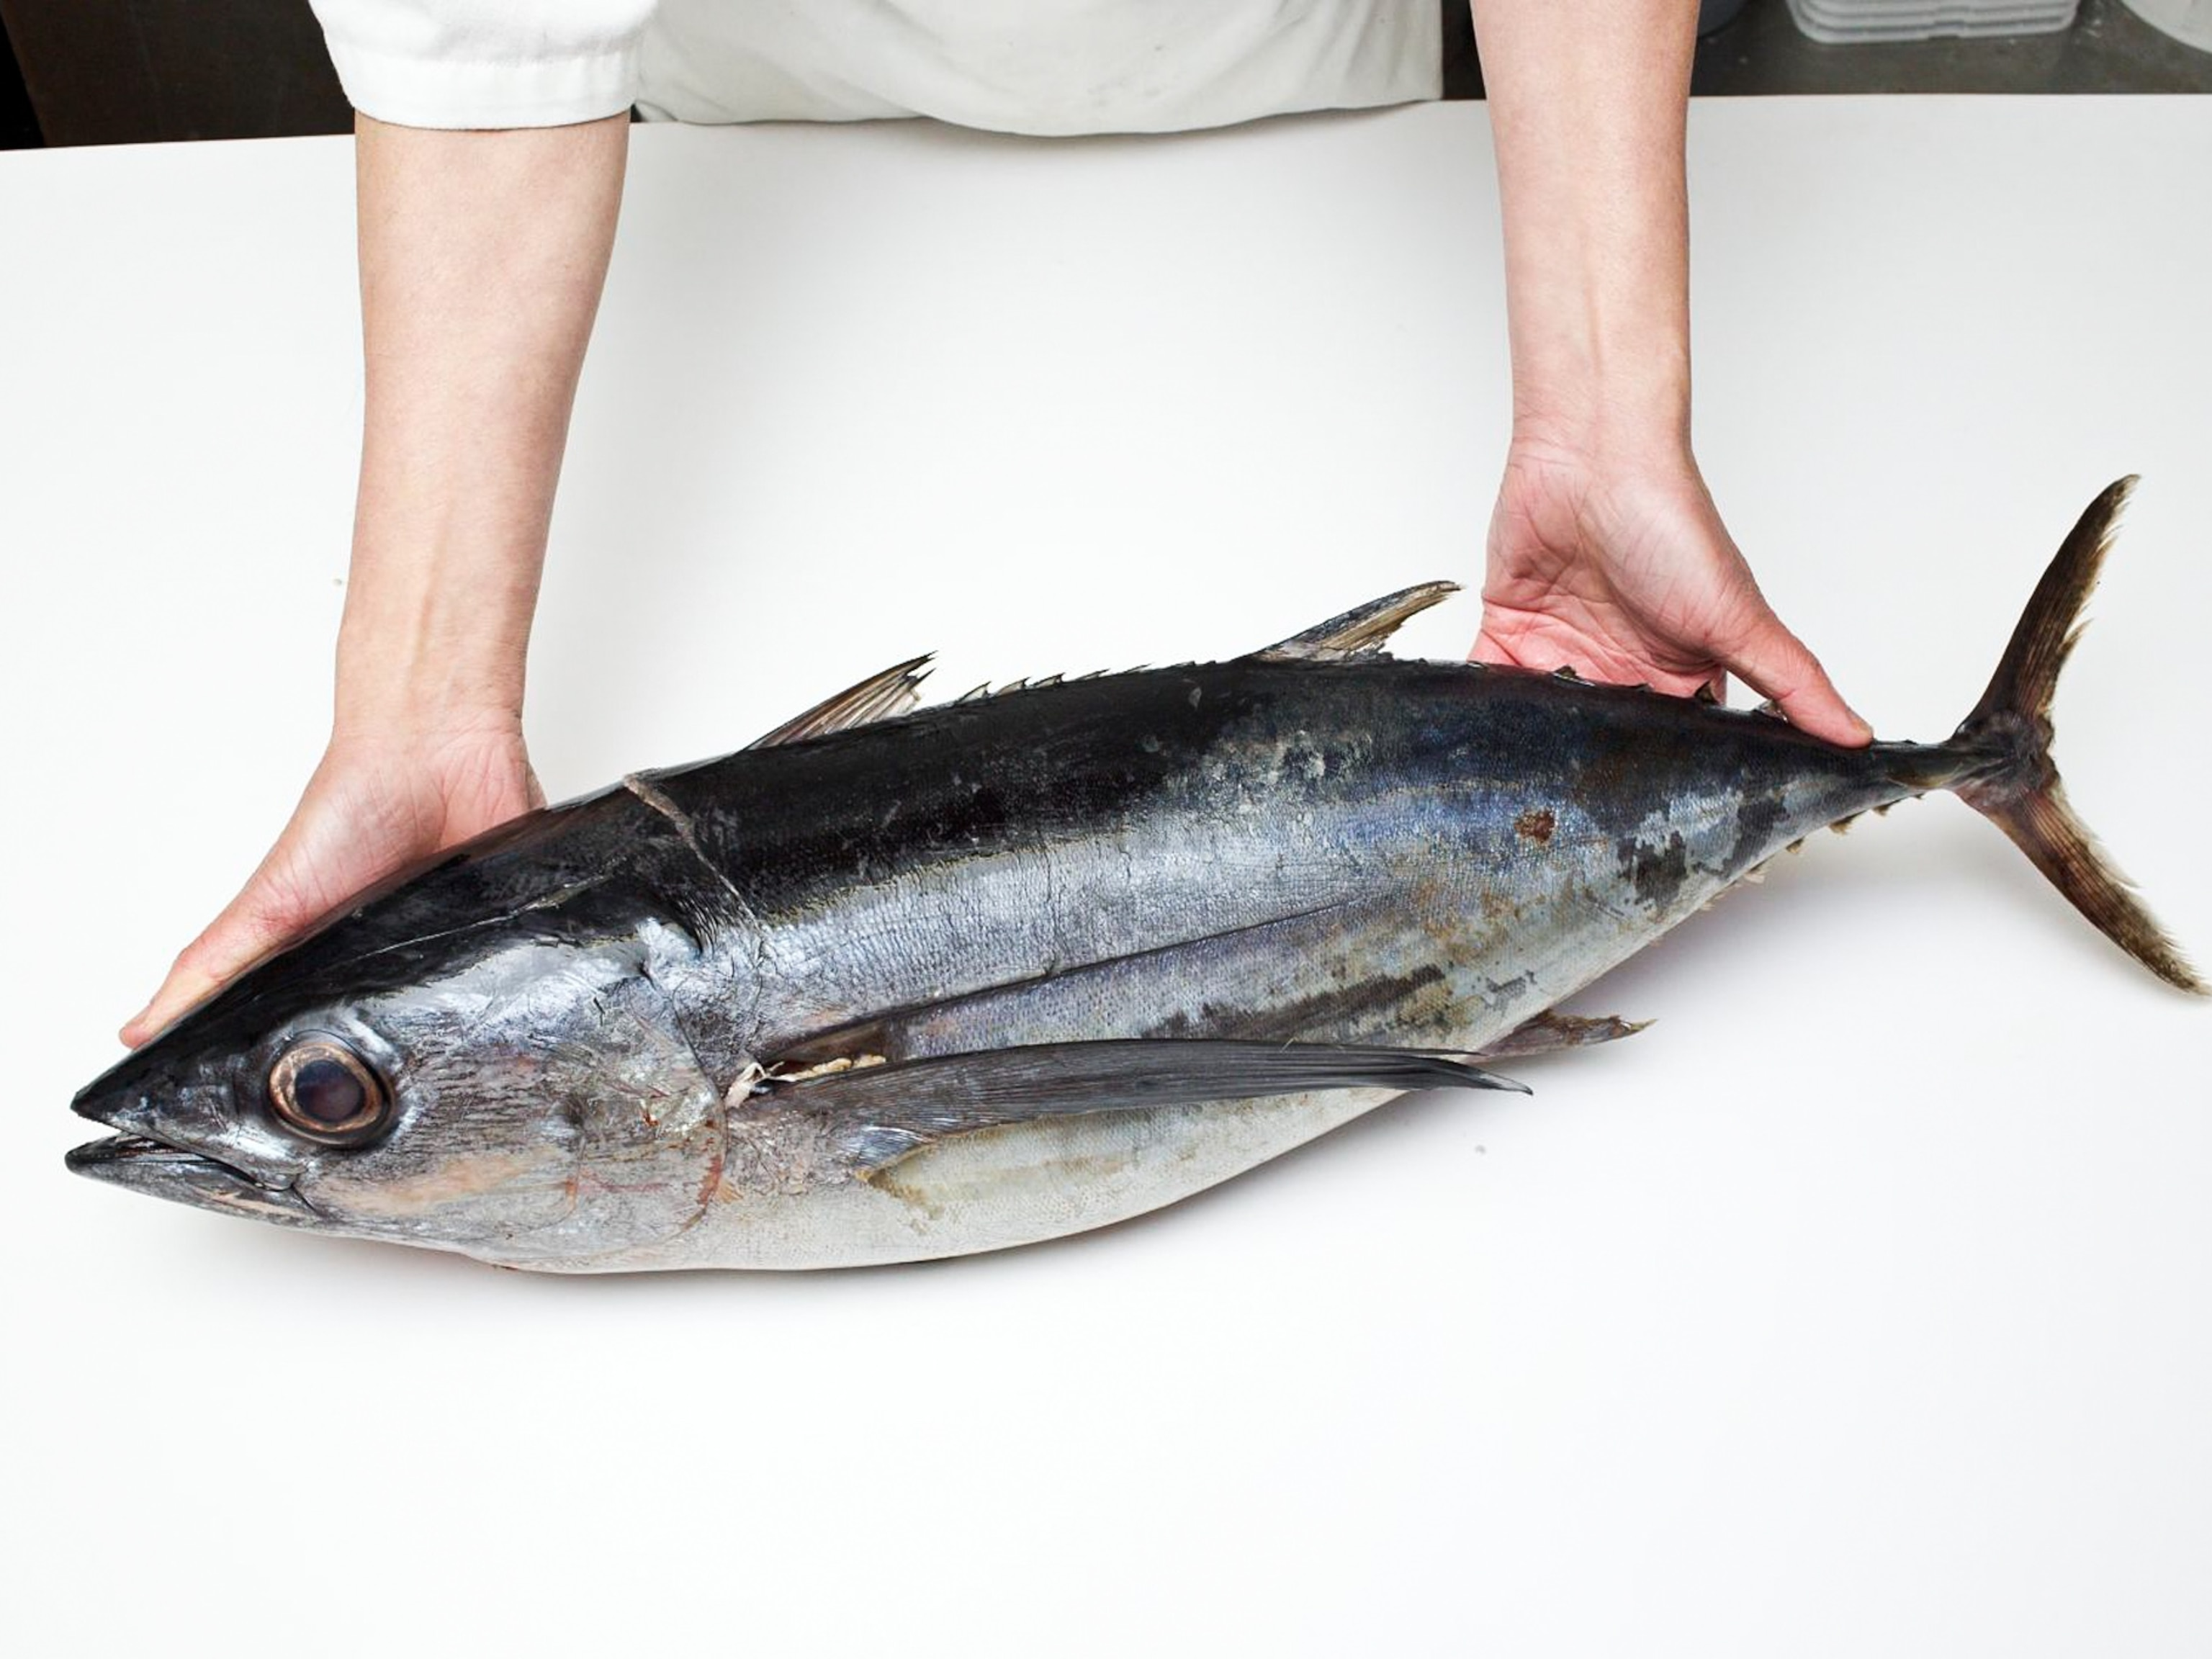 Tuna Lover's Dilemma: To Eat or Not to Eat?